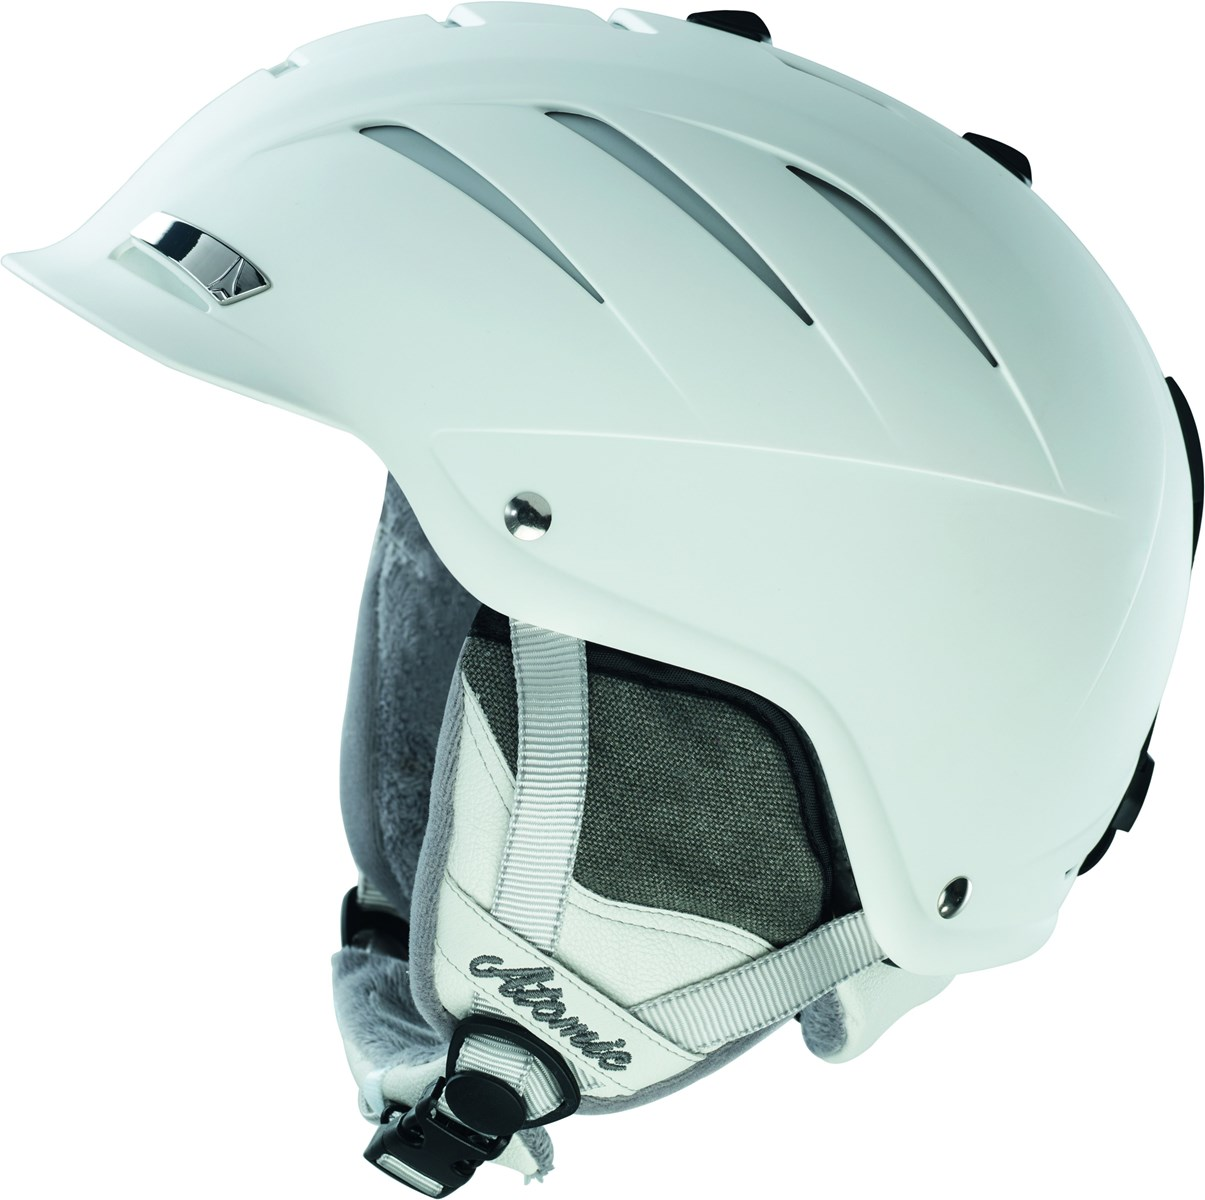 acf91909878 Atomic Affinity LF Ladies Ski Helmet White. 0 (Be the first to add a  review!)